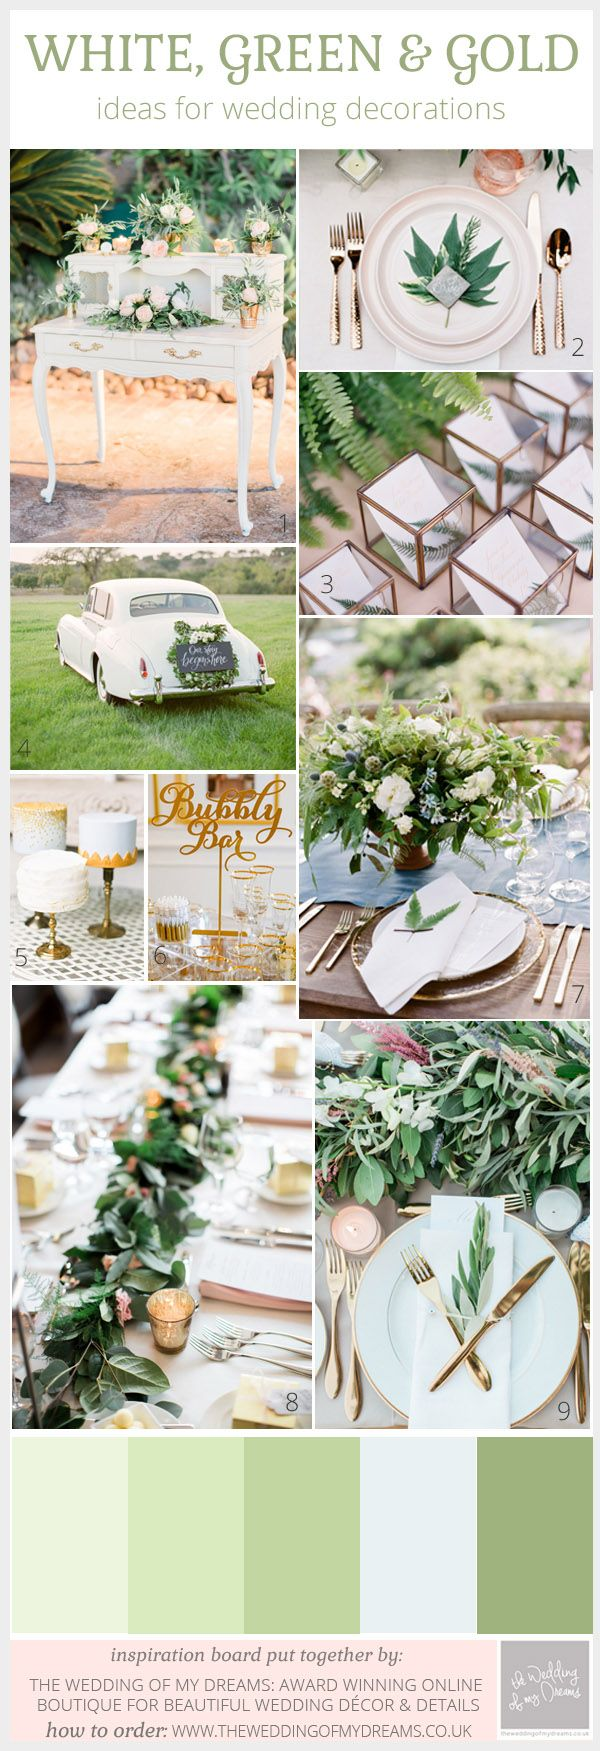 Green, White And Gold Wedding Ideas and Inspiration